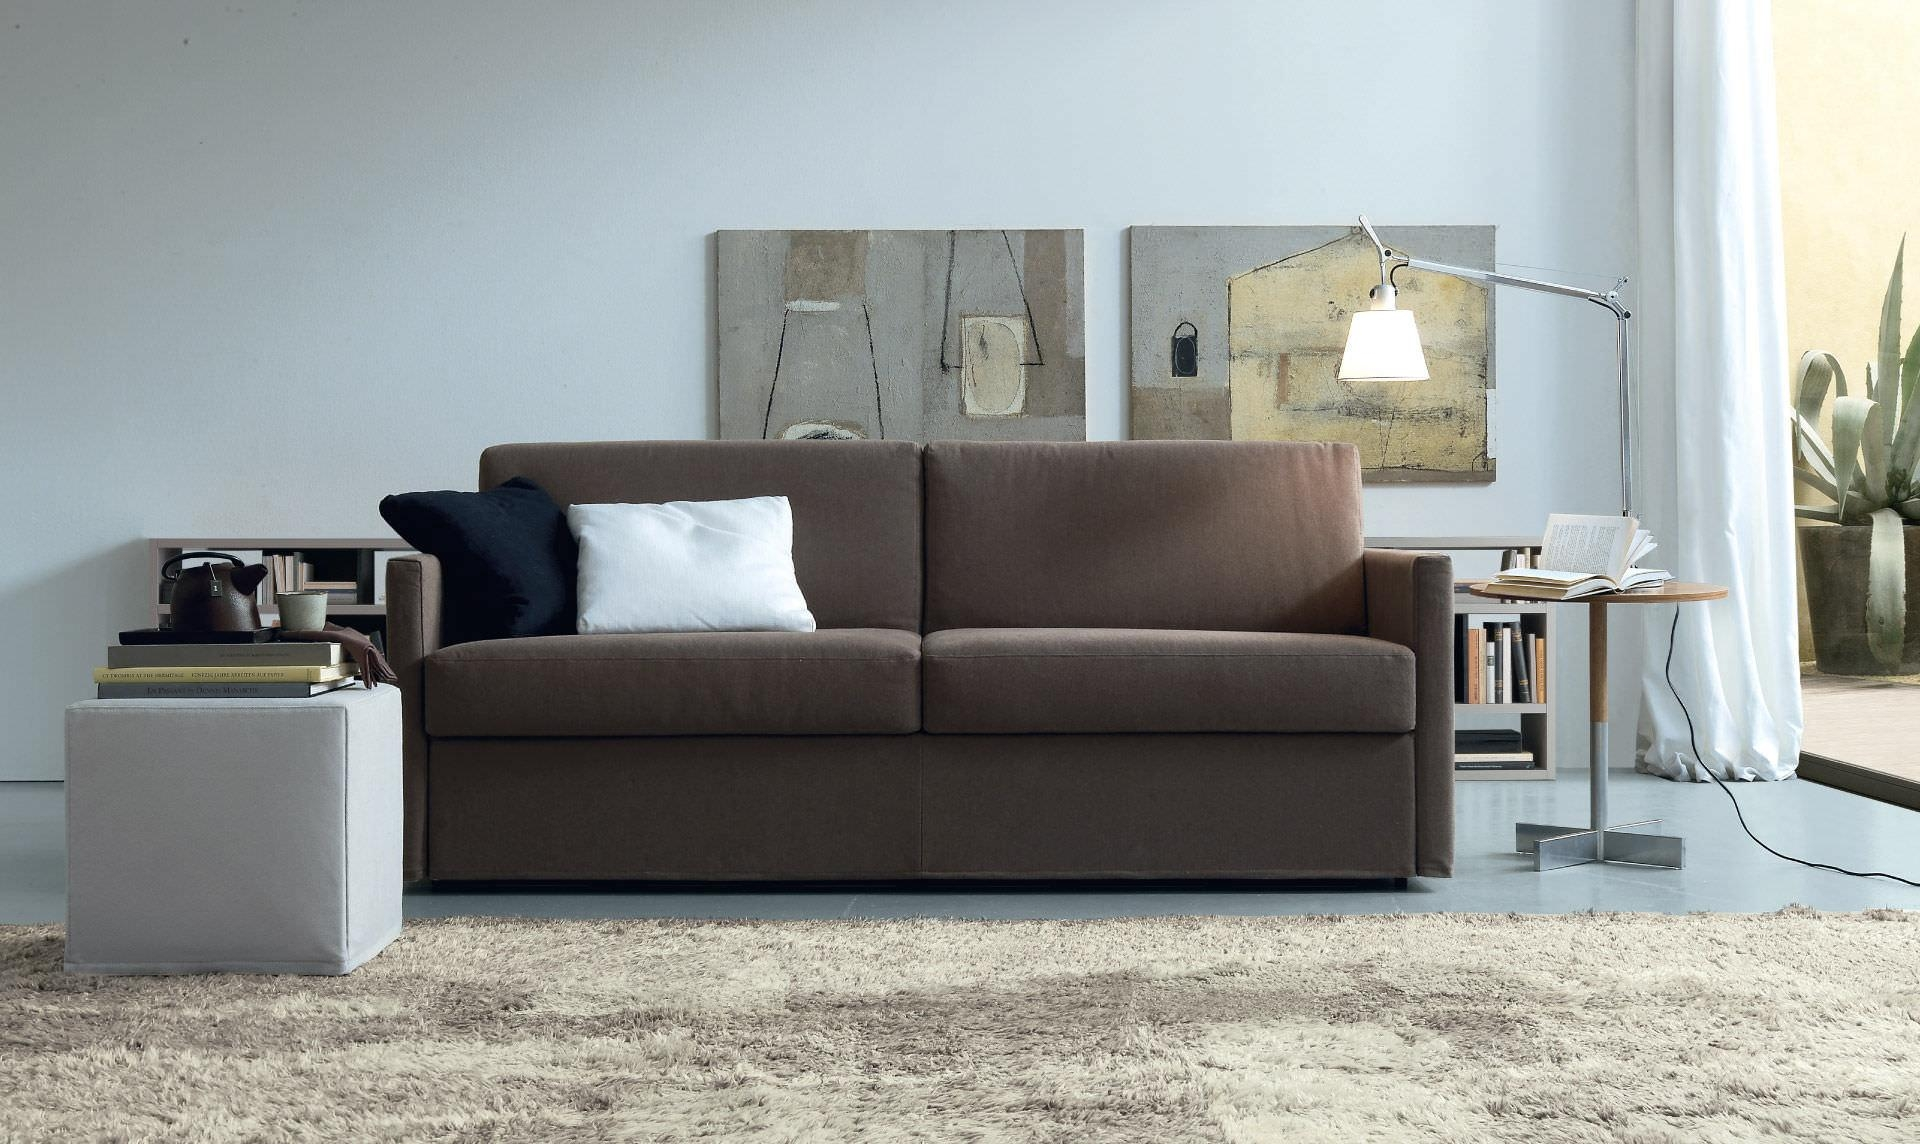 Sofa Bed / Contemporary / Fabric / 2 Seater – Luis – Jesse Inside Contemporary Fabric Sofas (Image 18 of 20)